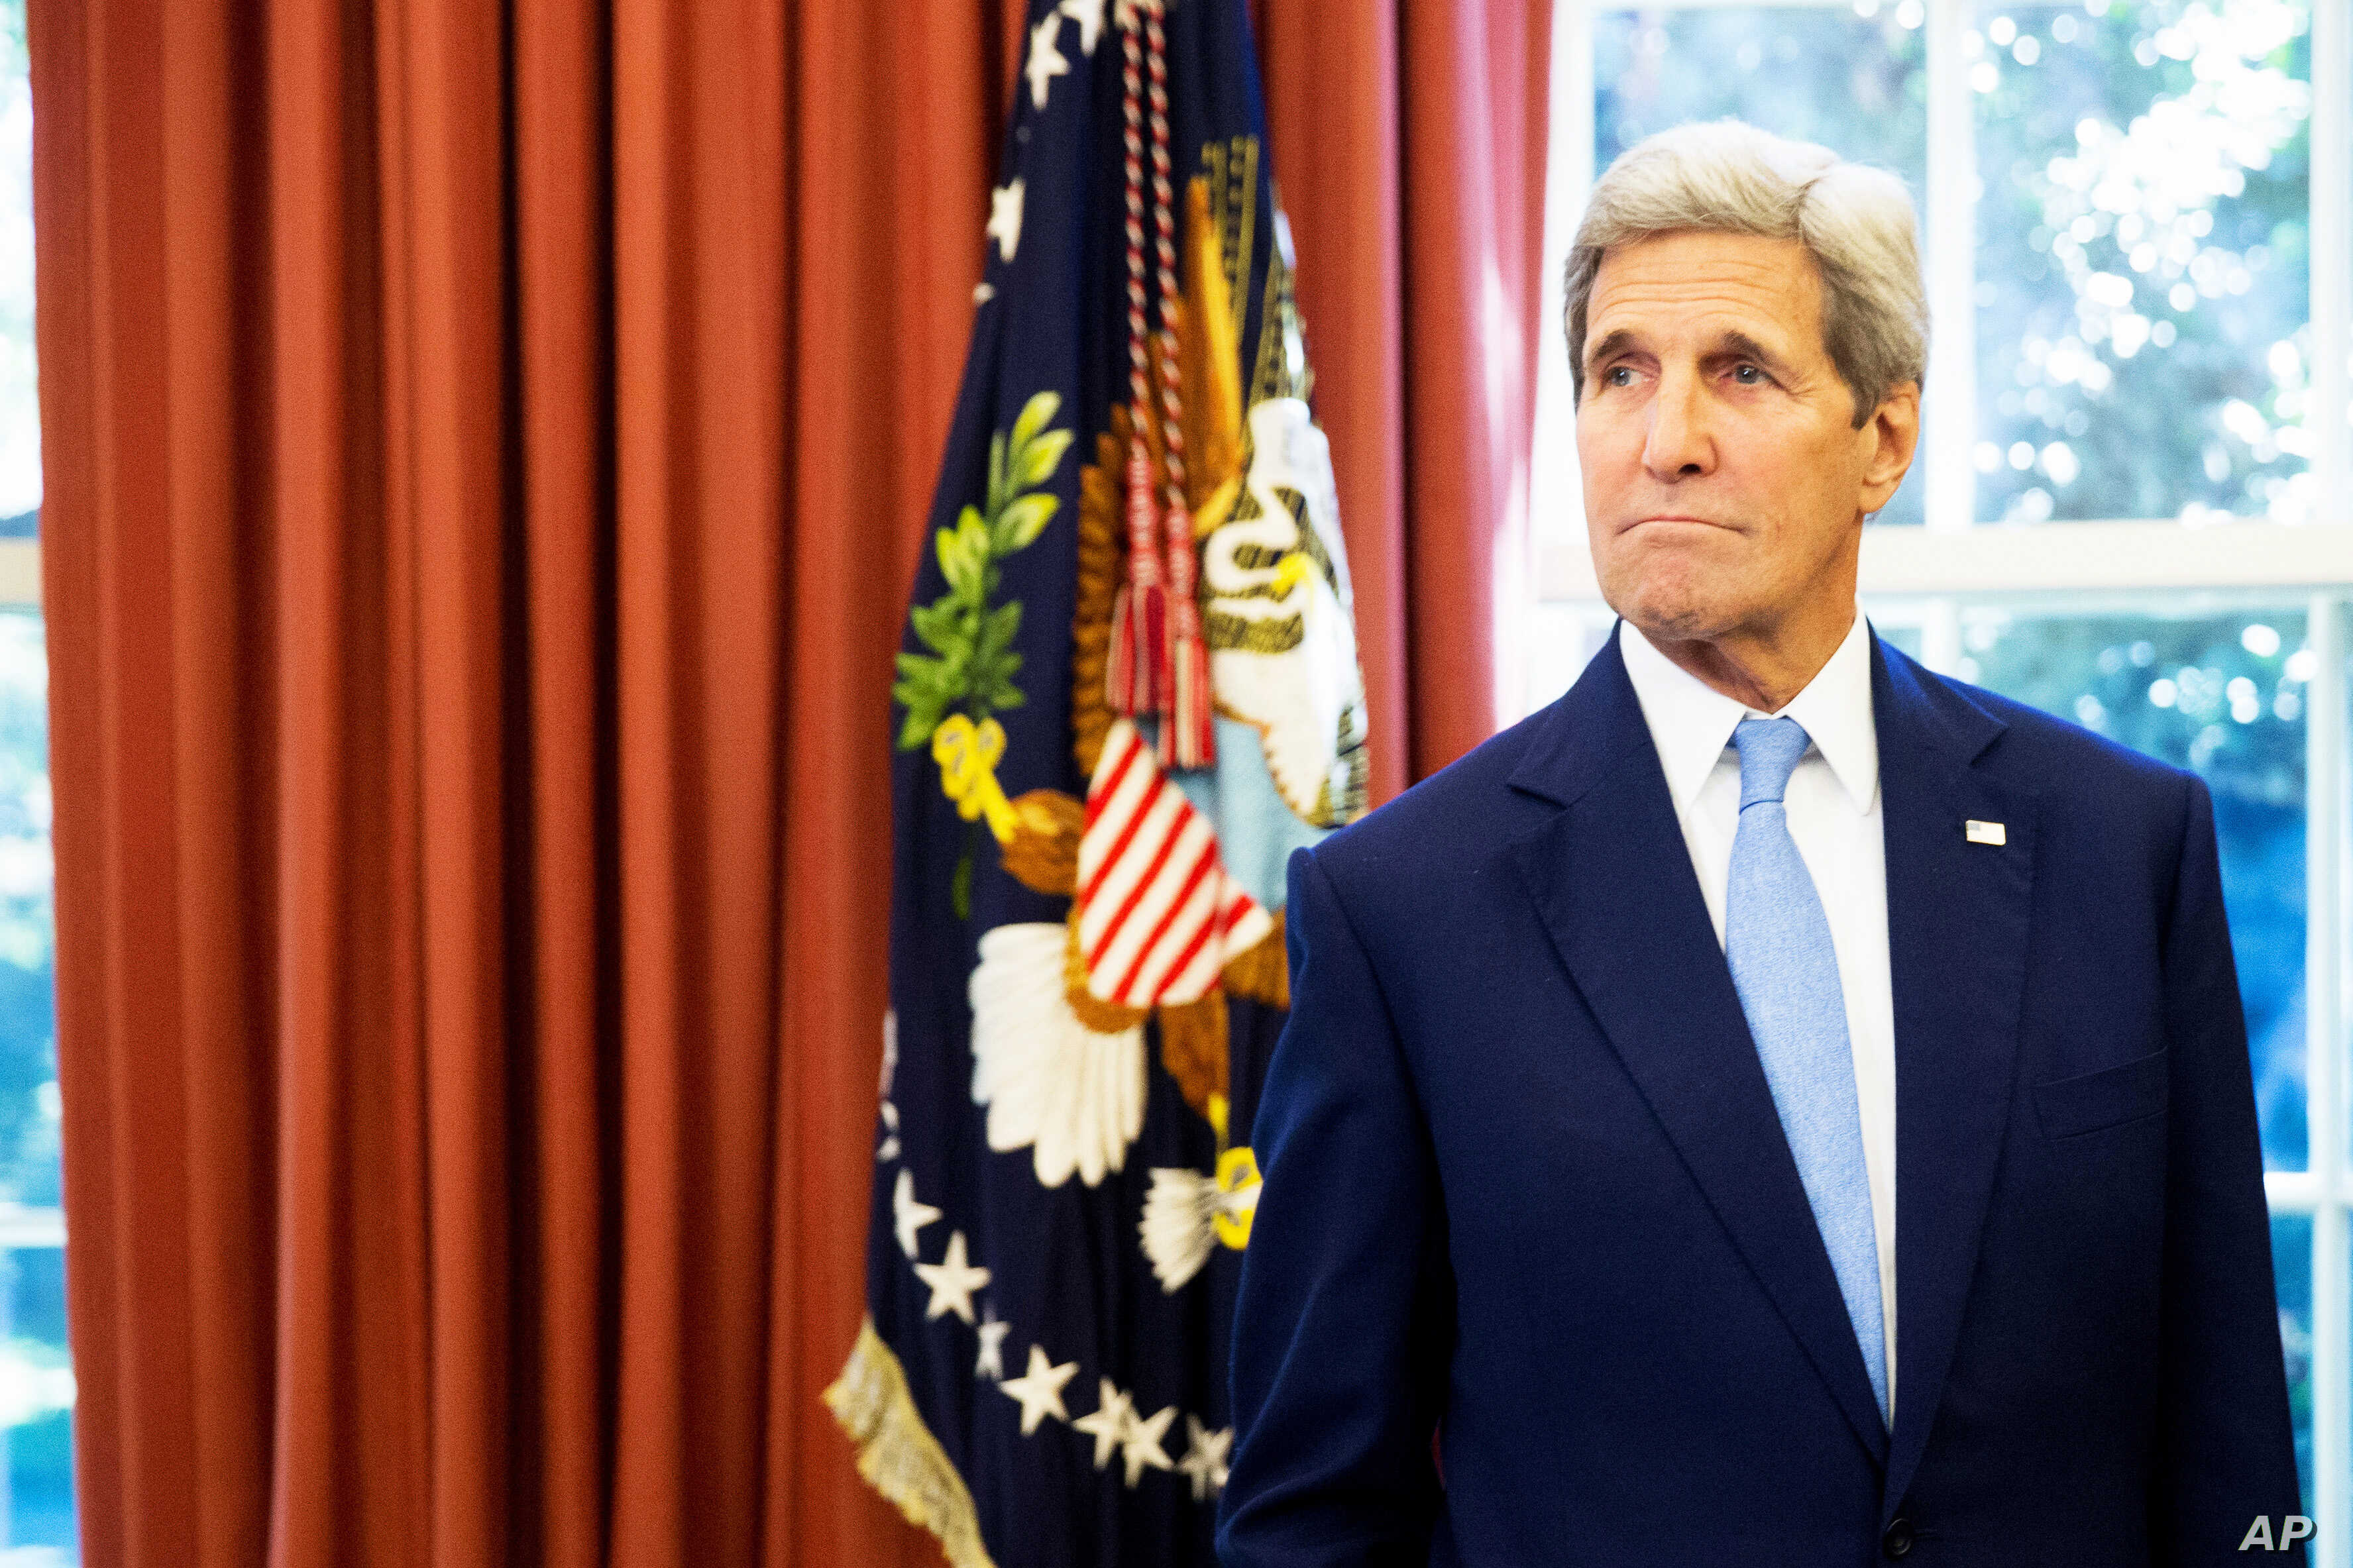 Secretary of State John Kerry in the Oval Office of the White House, Sep 15, 2015.